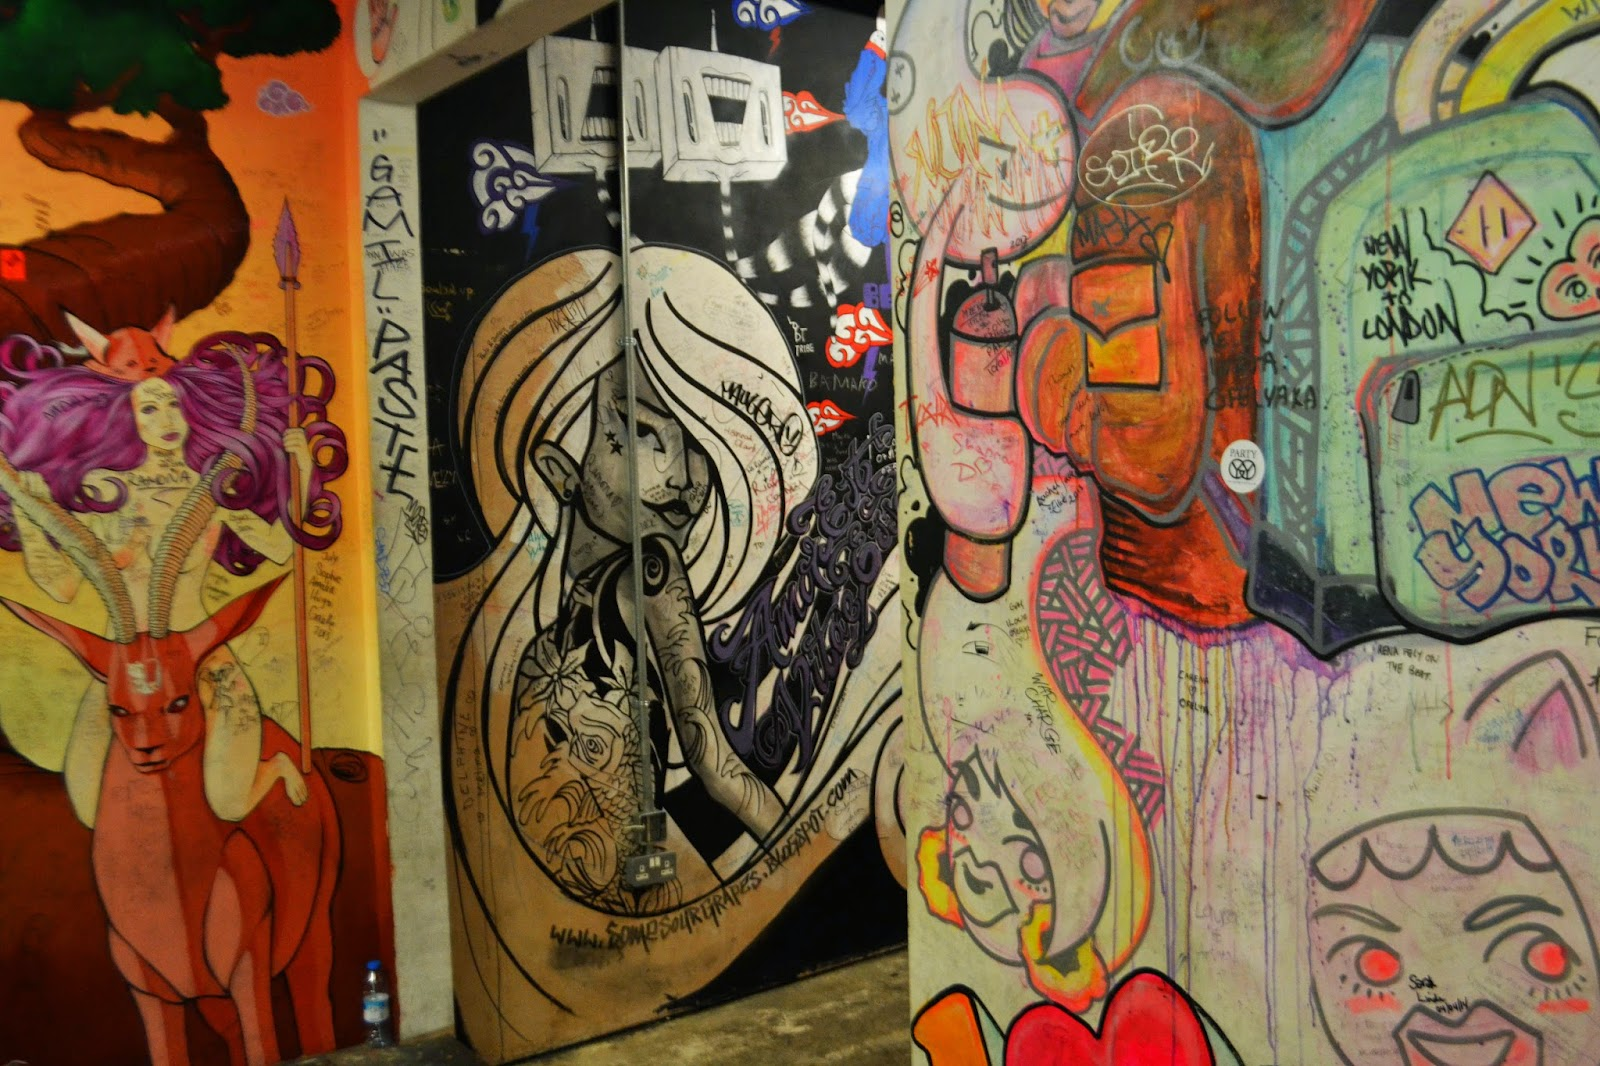 a heavily graffitied wall inside Camden Market